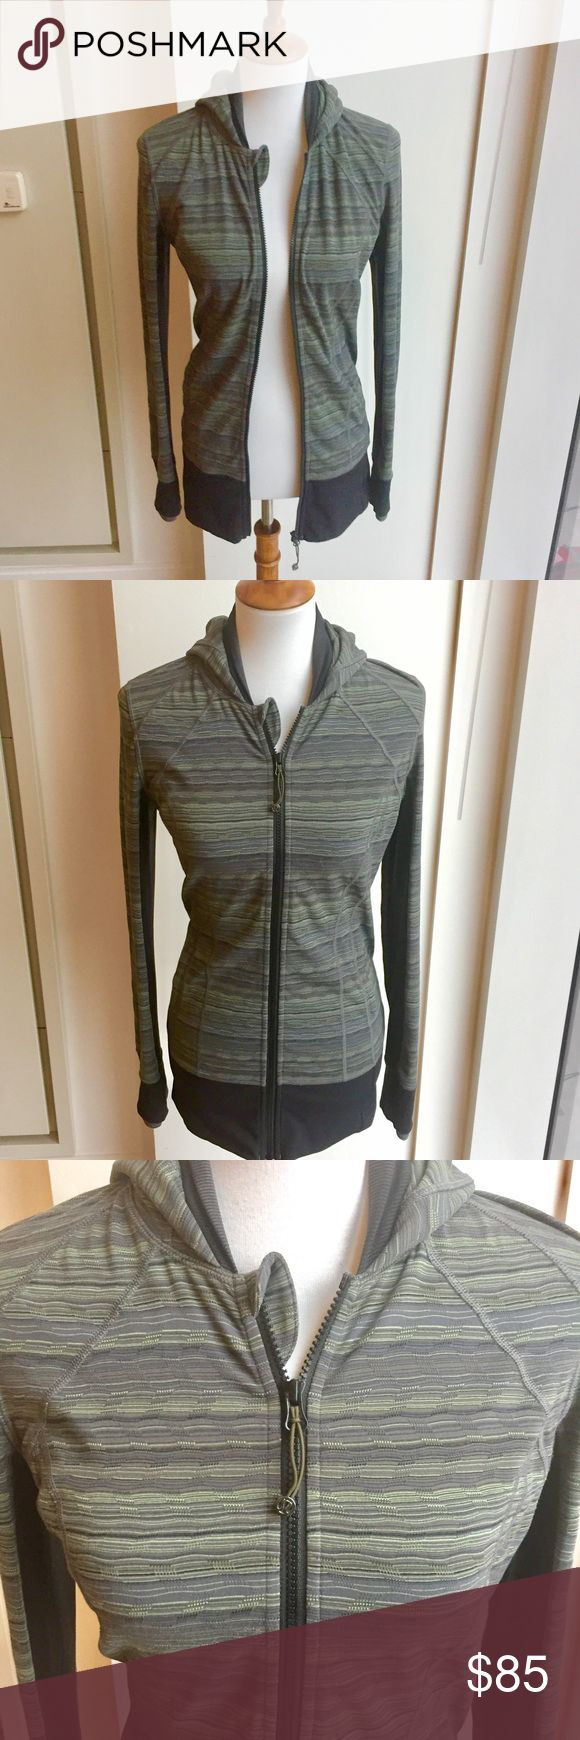 Lululemon Striped Zip Up Hoodie - Like new Lululemon Striped Zip Up Hoodie - size 6 - worn 3-5 times/like new - color is hard to describe but is a gorgeous combo of gray, green & blue - longer style that covers some of butt - thumbholes, 2 waist pockets - received as a gift Xmas 2015 but need a size smaller so it's been sitting in my closet - bundle & save! lululemon athletica Jackets & Coats